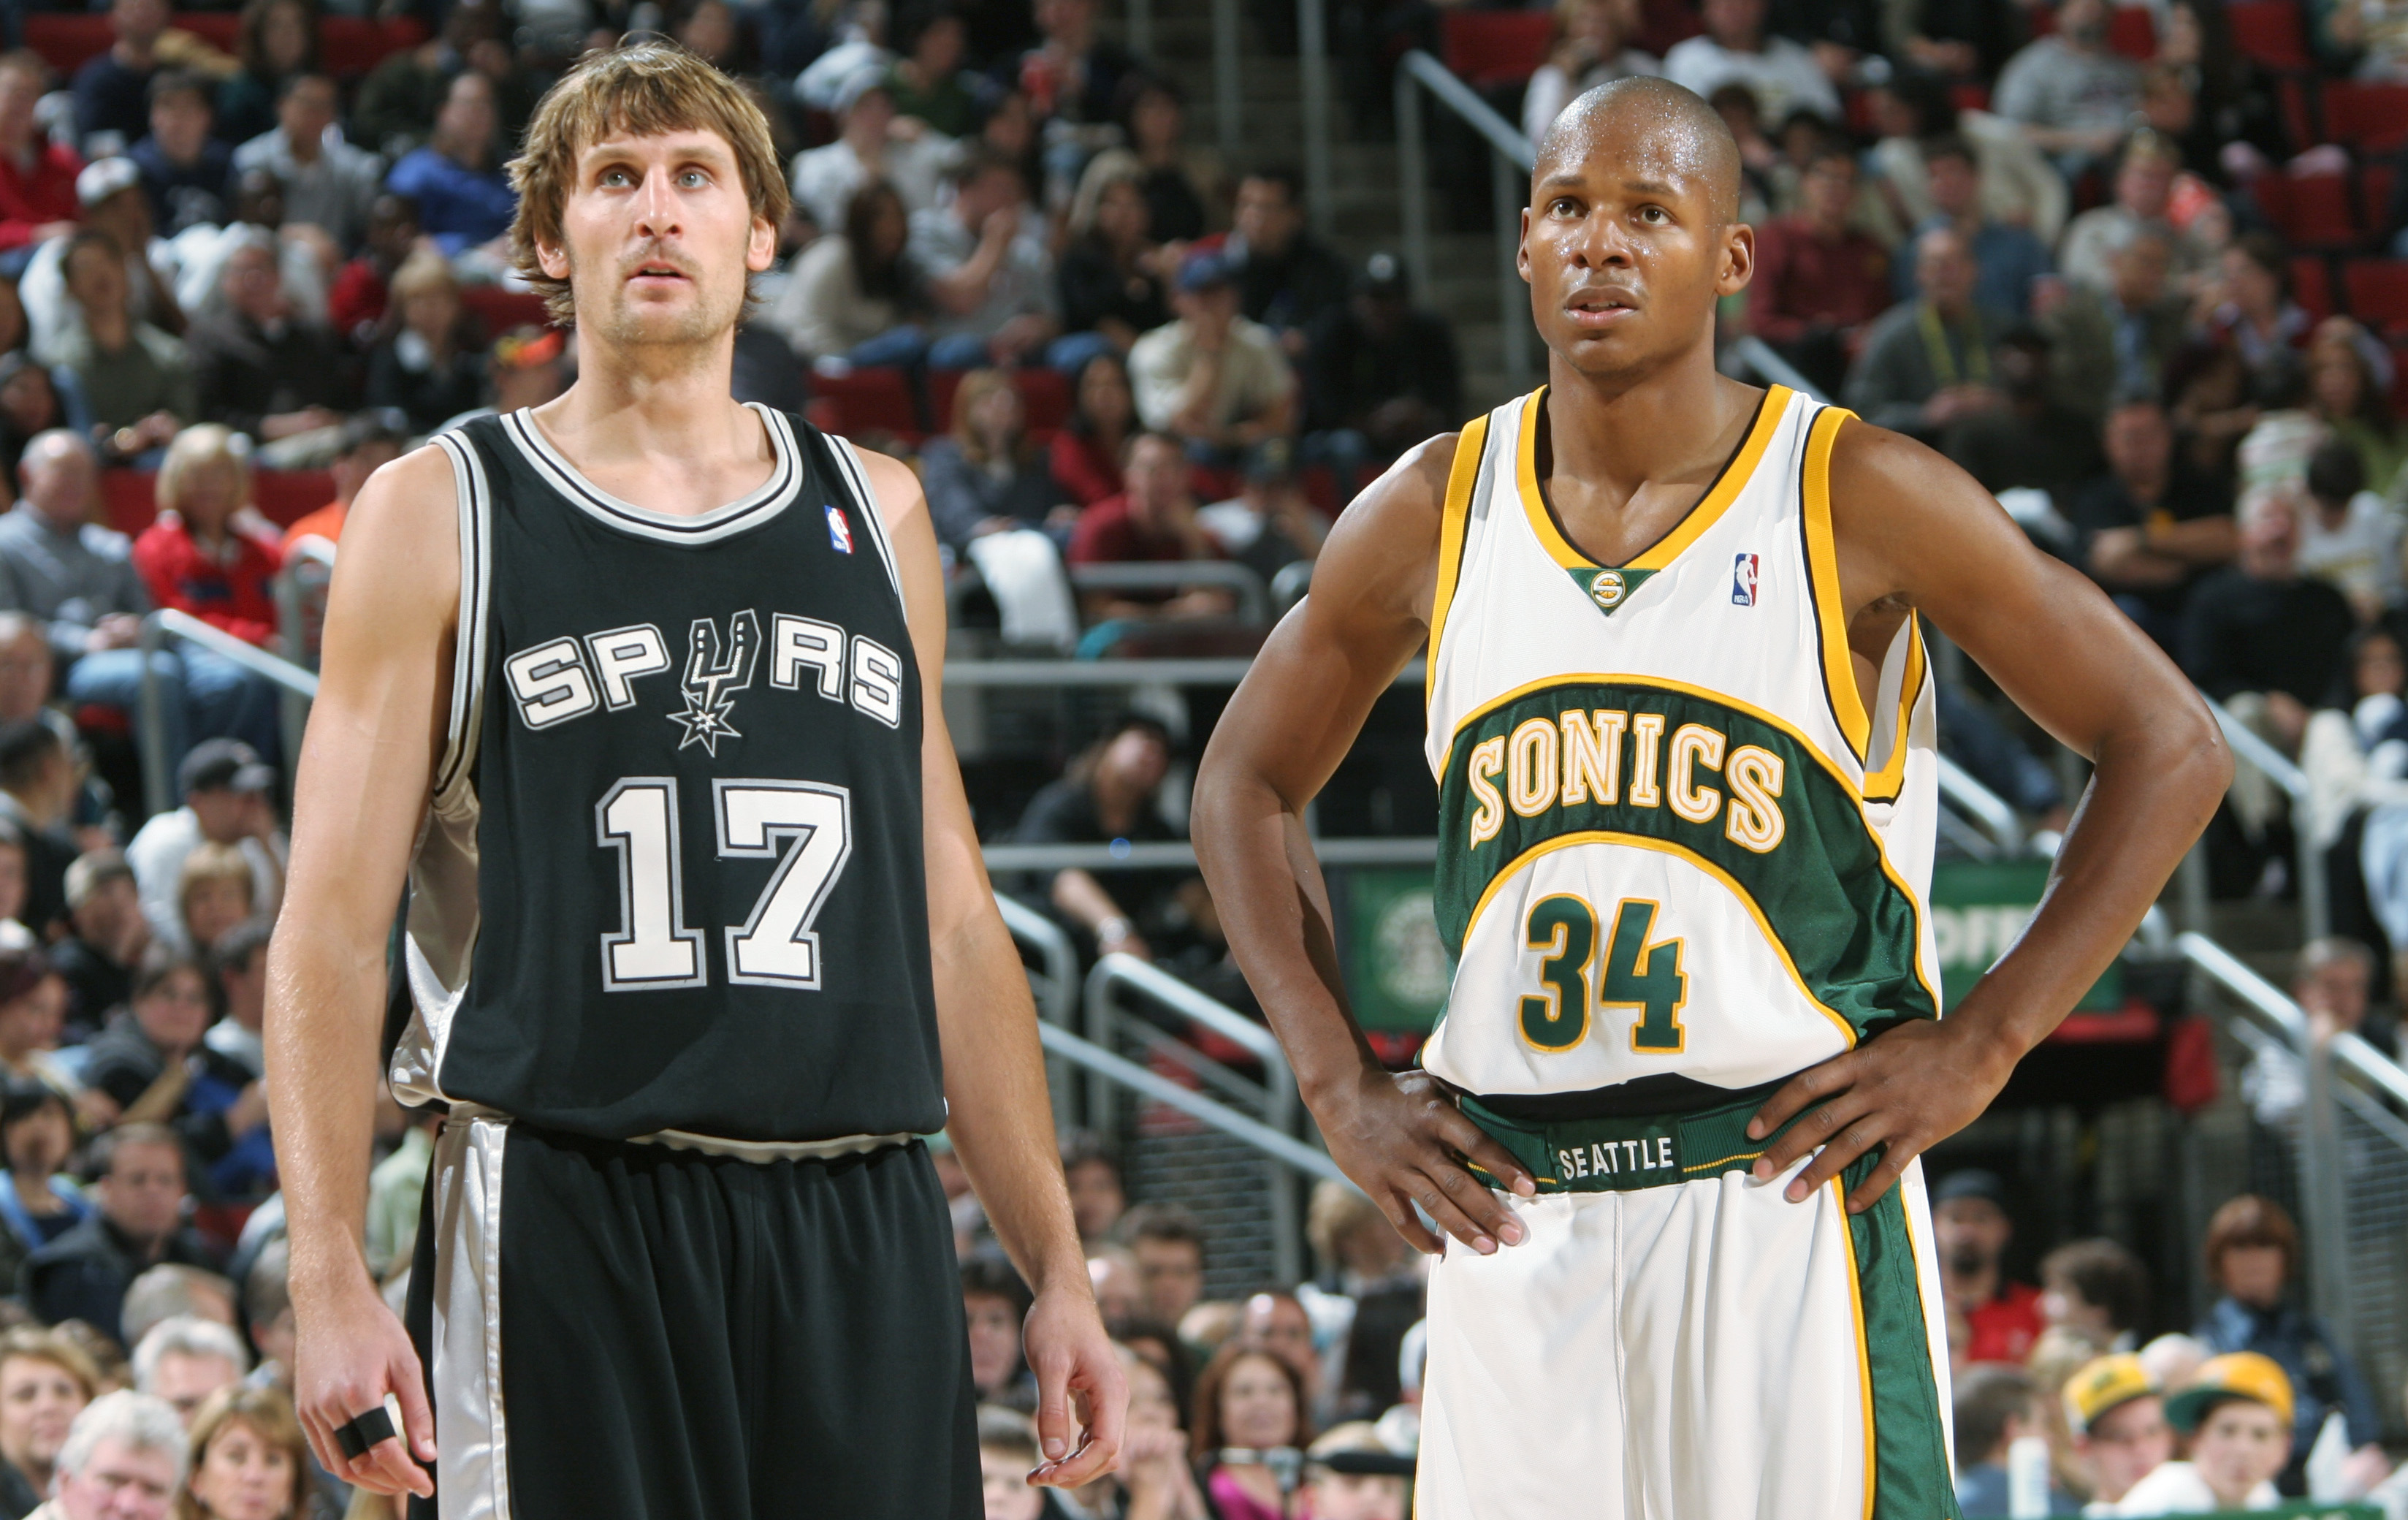 SEATTLE - NOVEMBER 7:  Brent Barry #17 of the San Antonio Spurs stands on the court next to Ray Allen #34 of the Seattle Sonics during the game at Key Arena on November 7, 2004 in Seattle, Washington. The Sonics won 113-94.  NOTE TO USER: User expressly a